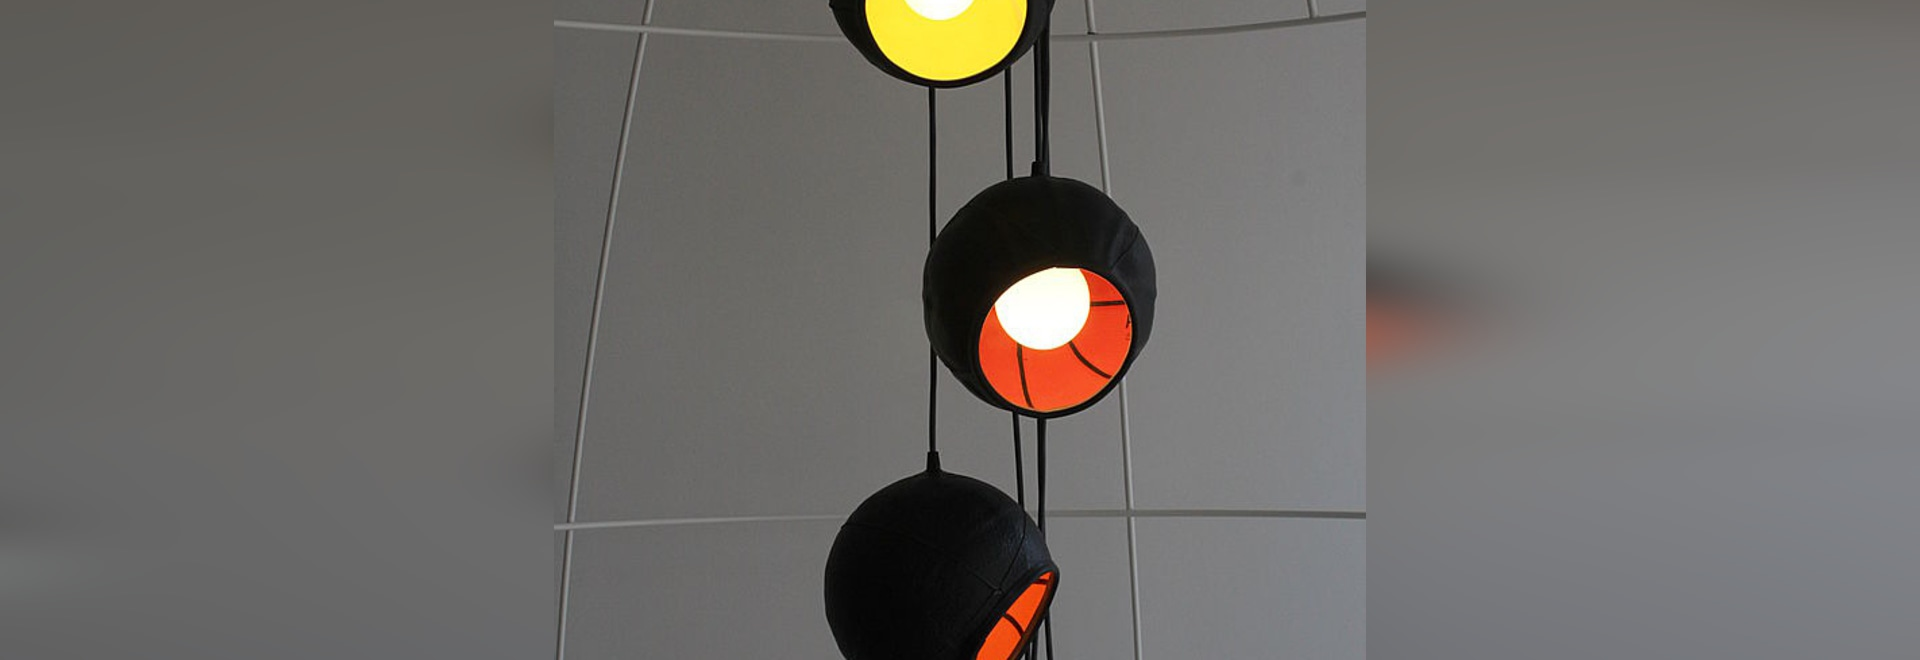 LET''S PLAY - Hanging lamp